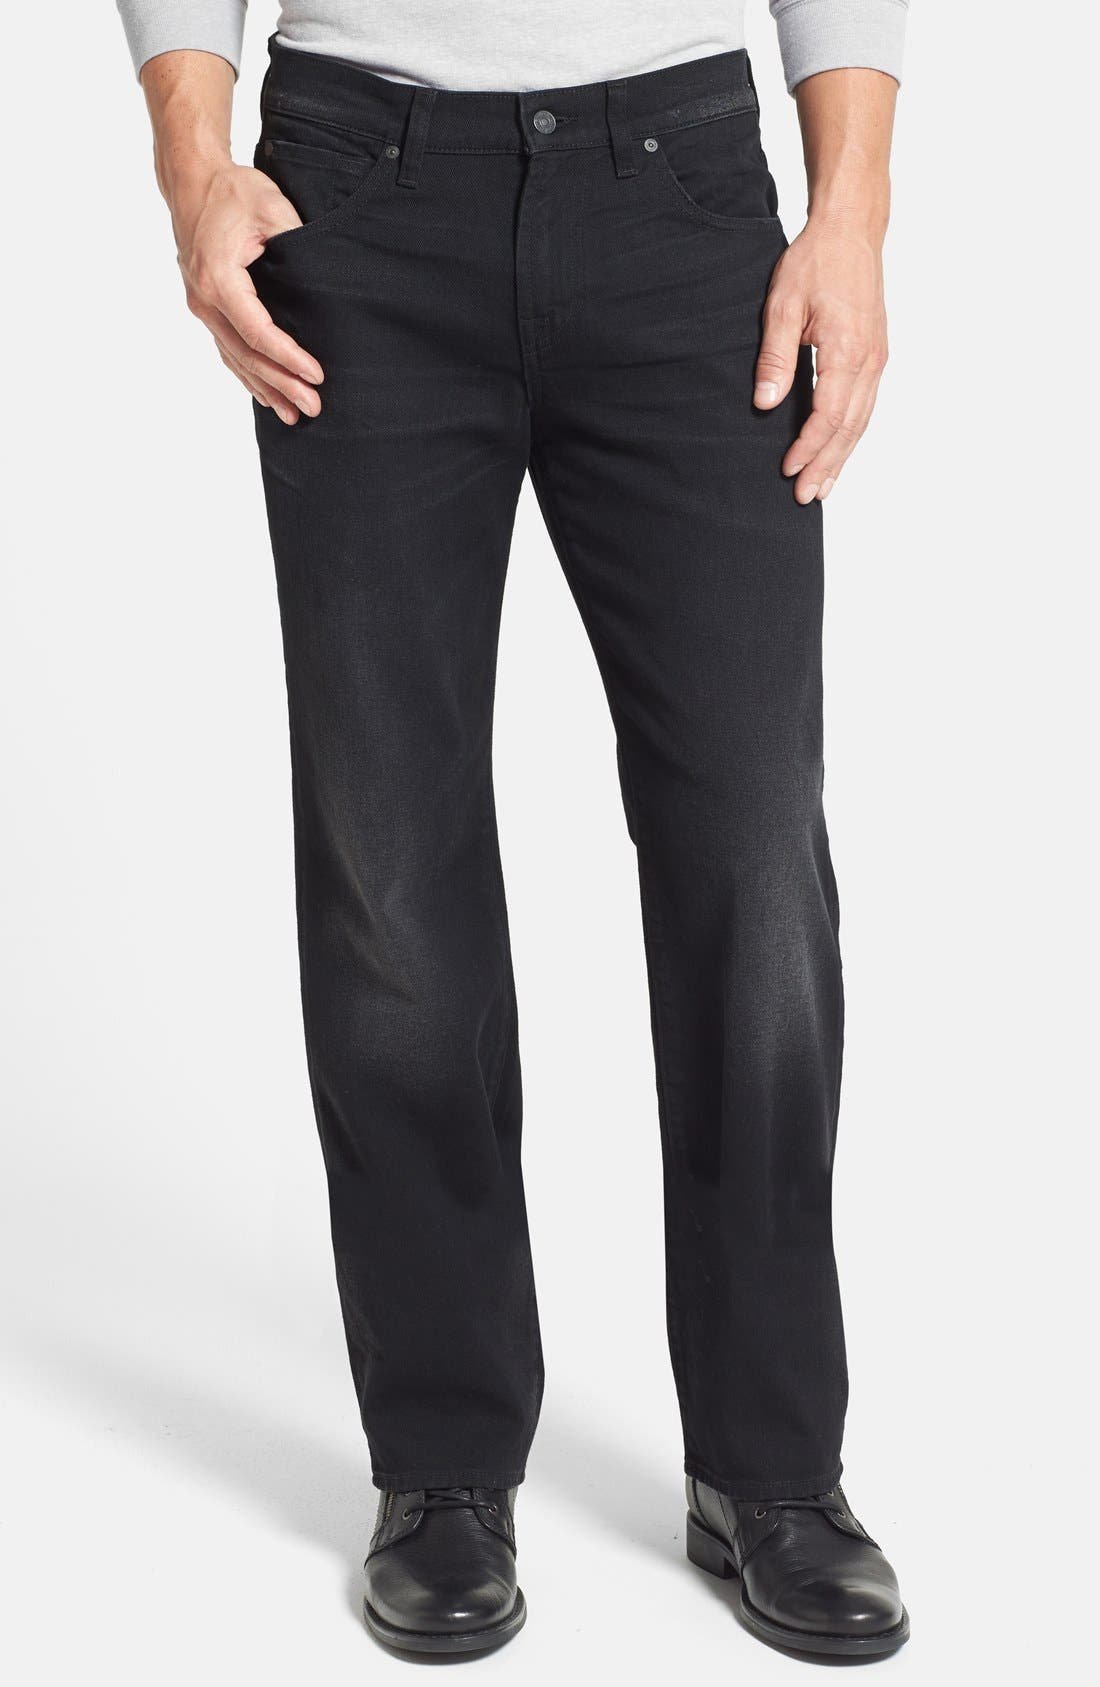 Alternate Image 1 Selected - 7 For All Mankind® 'Austyn' Relaxed Straight Leg Jeans (Dark West Edge) (Online Only)